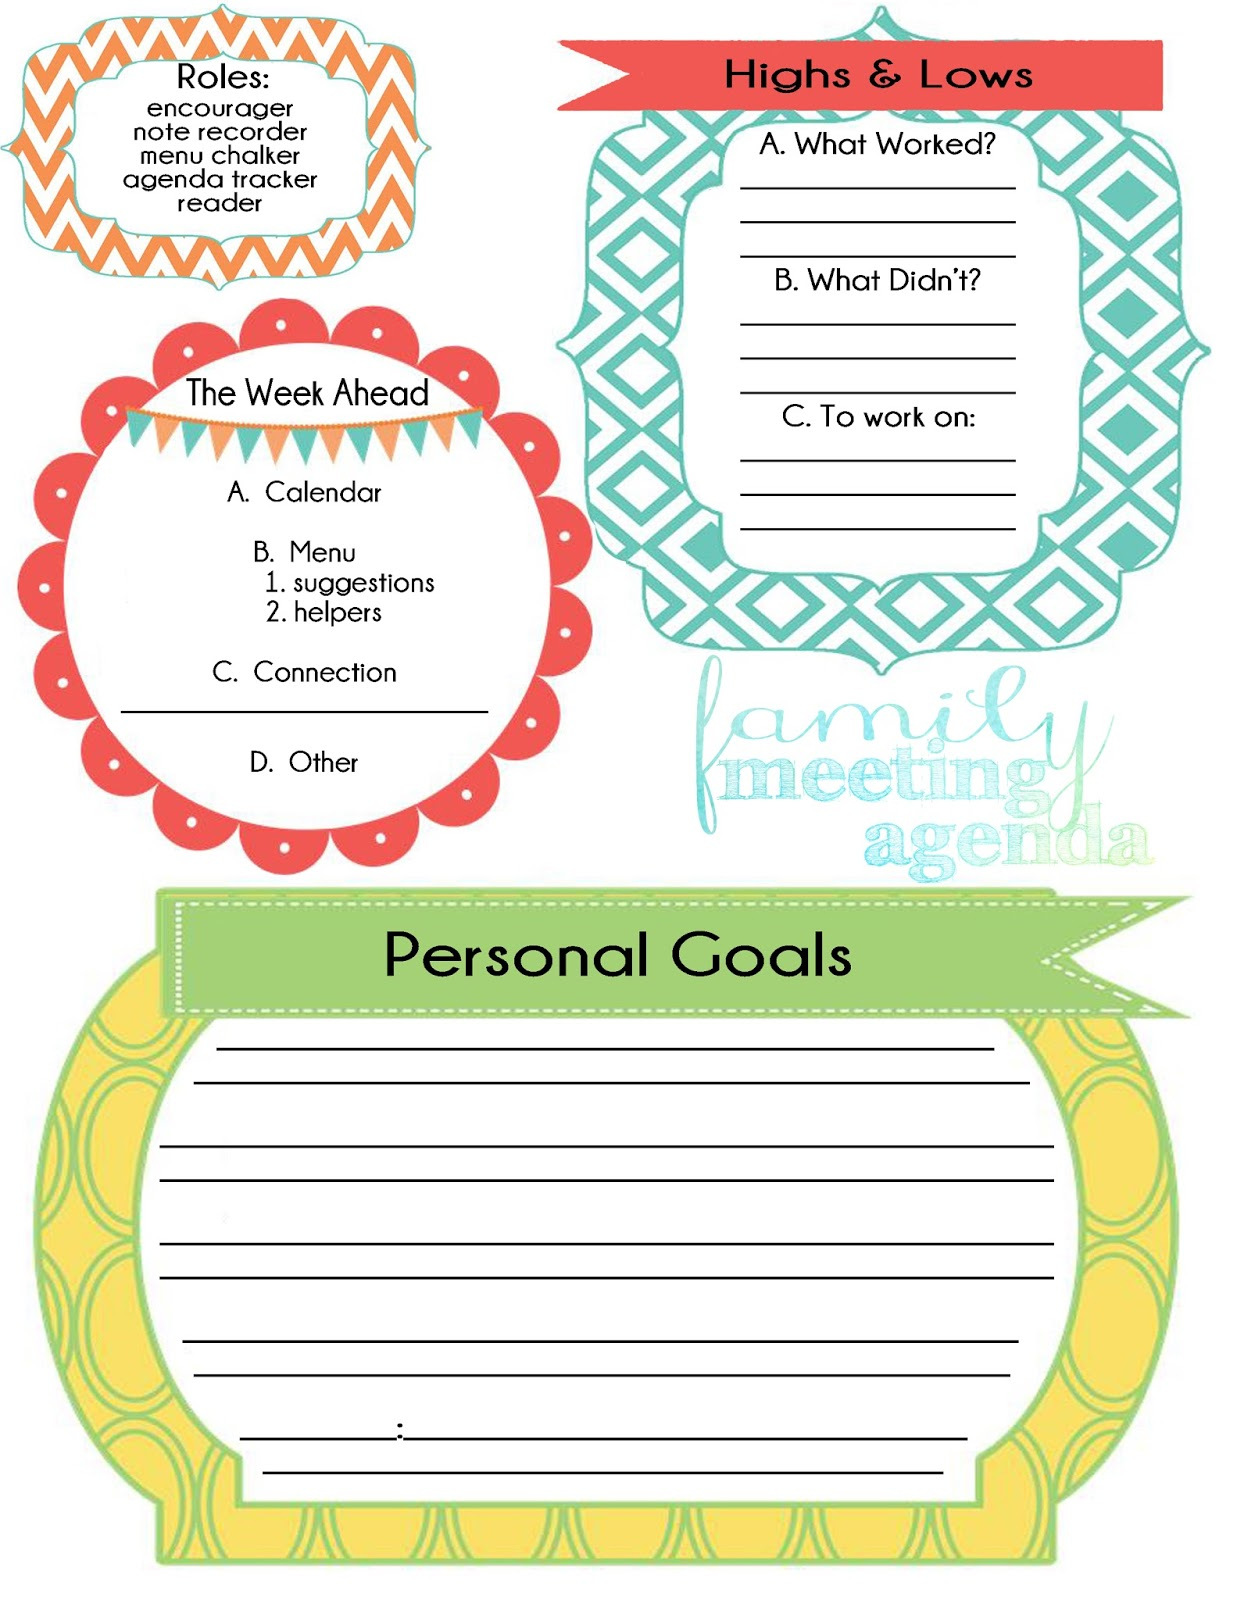 Life Made Creations Family Meeting Free Printable